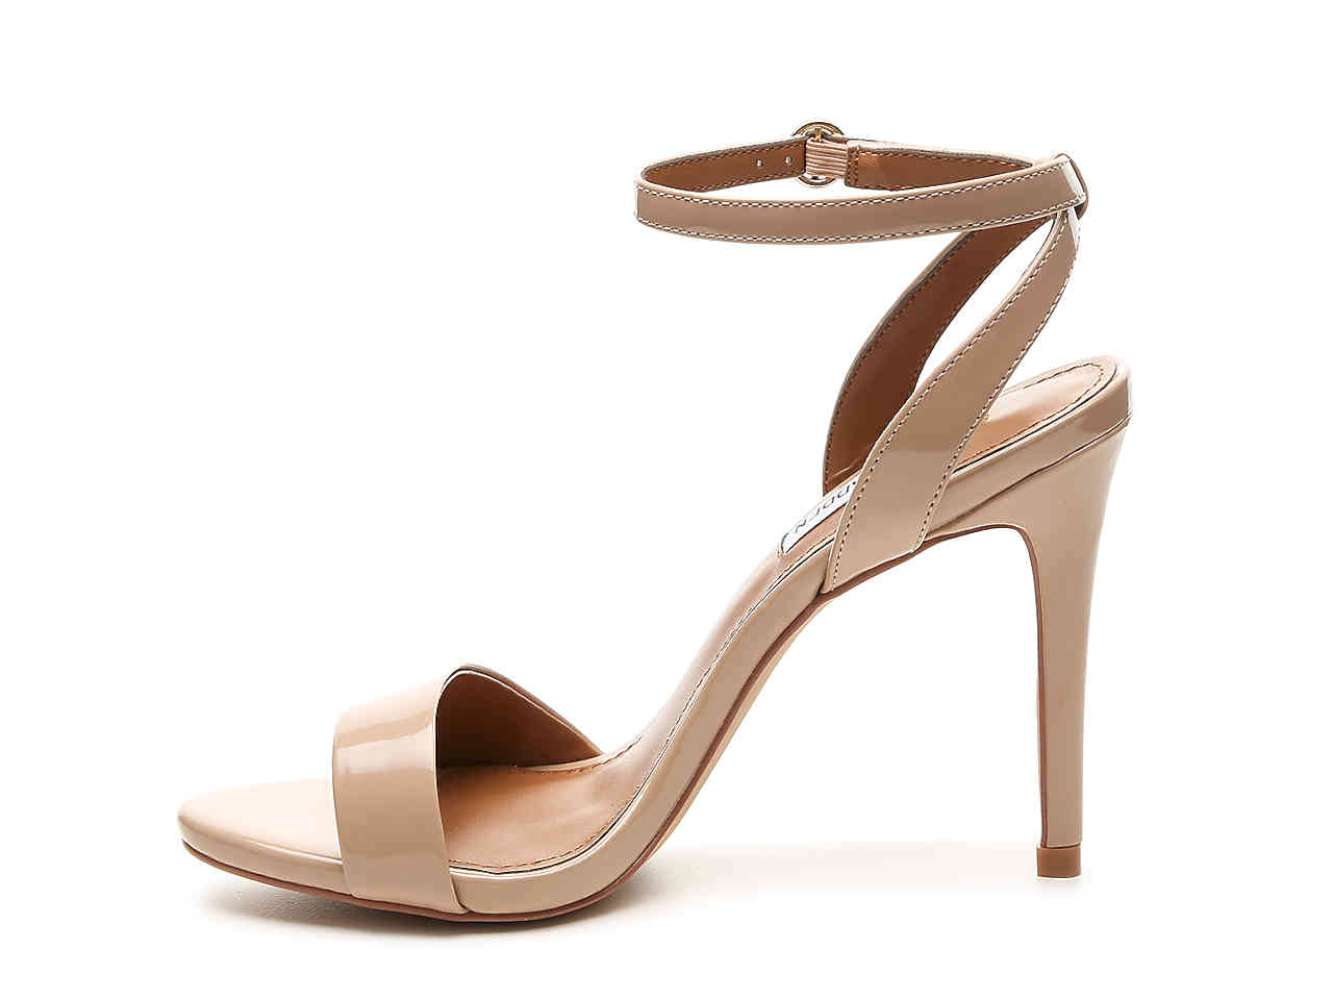 Steve Madden Womens Reno Open Toe Casual Ankle Strap Sandals nude pat Size 9.0